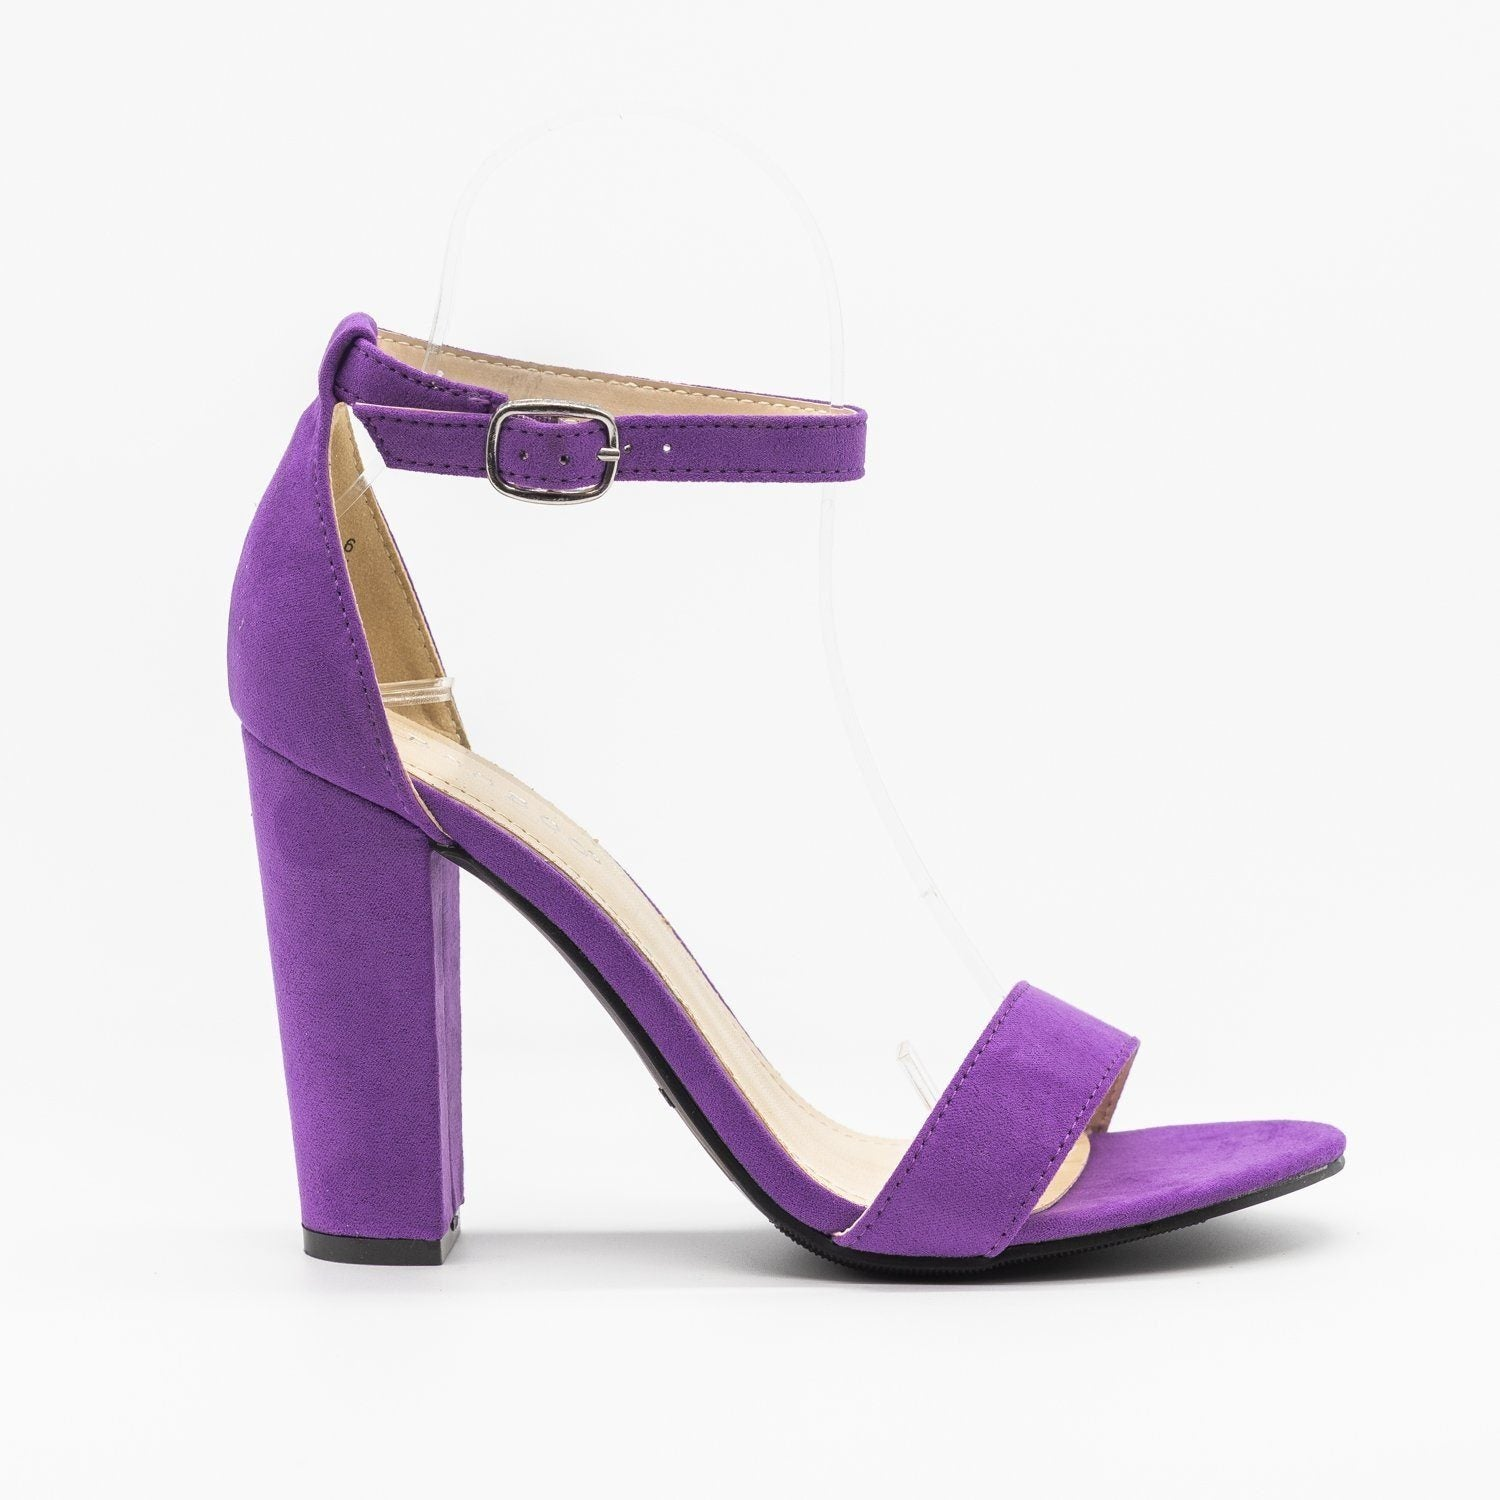 Vibrant Ankle Strap Chunky Heels Qupid